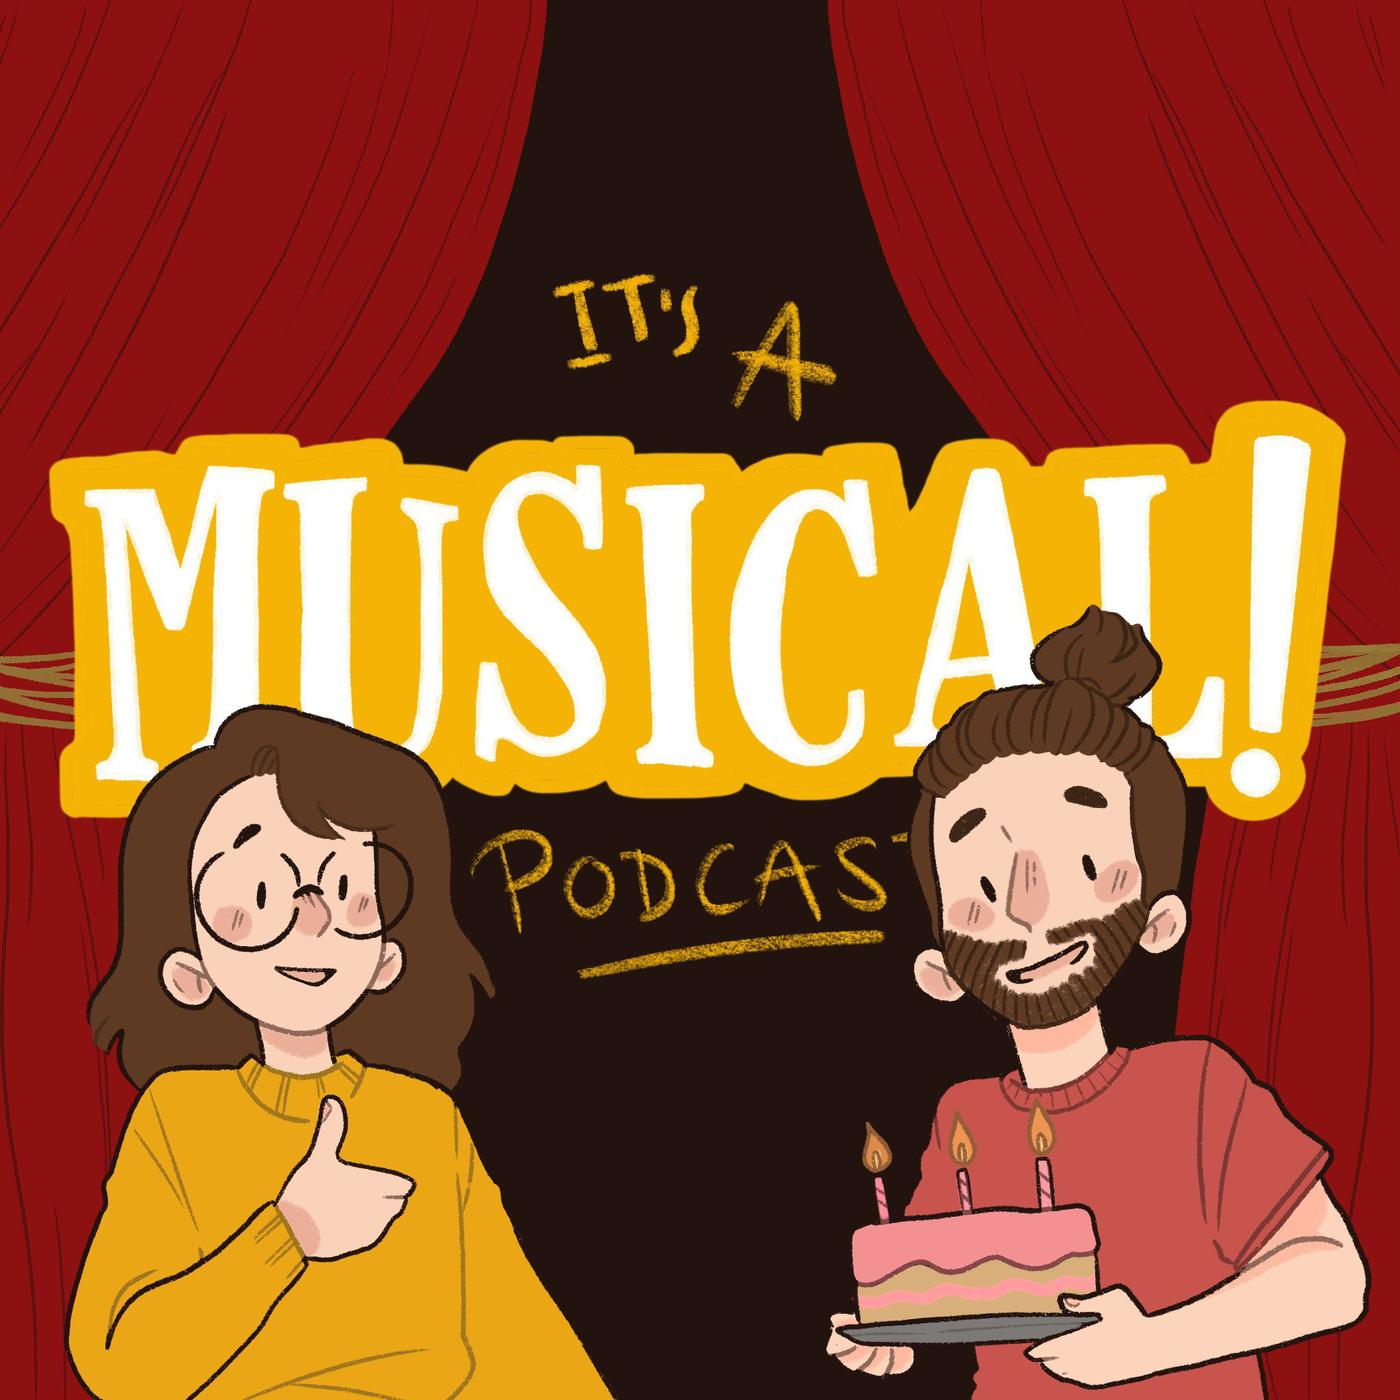 it's a musical podcast